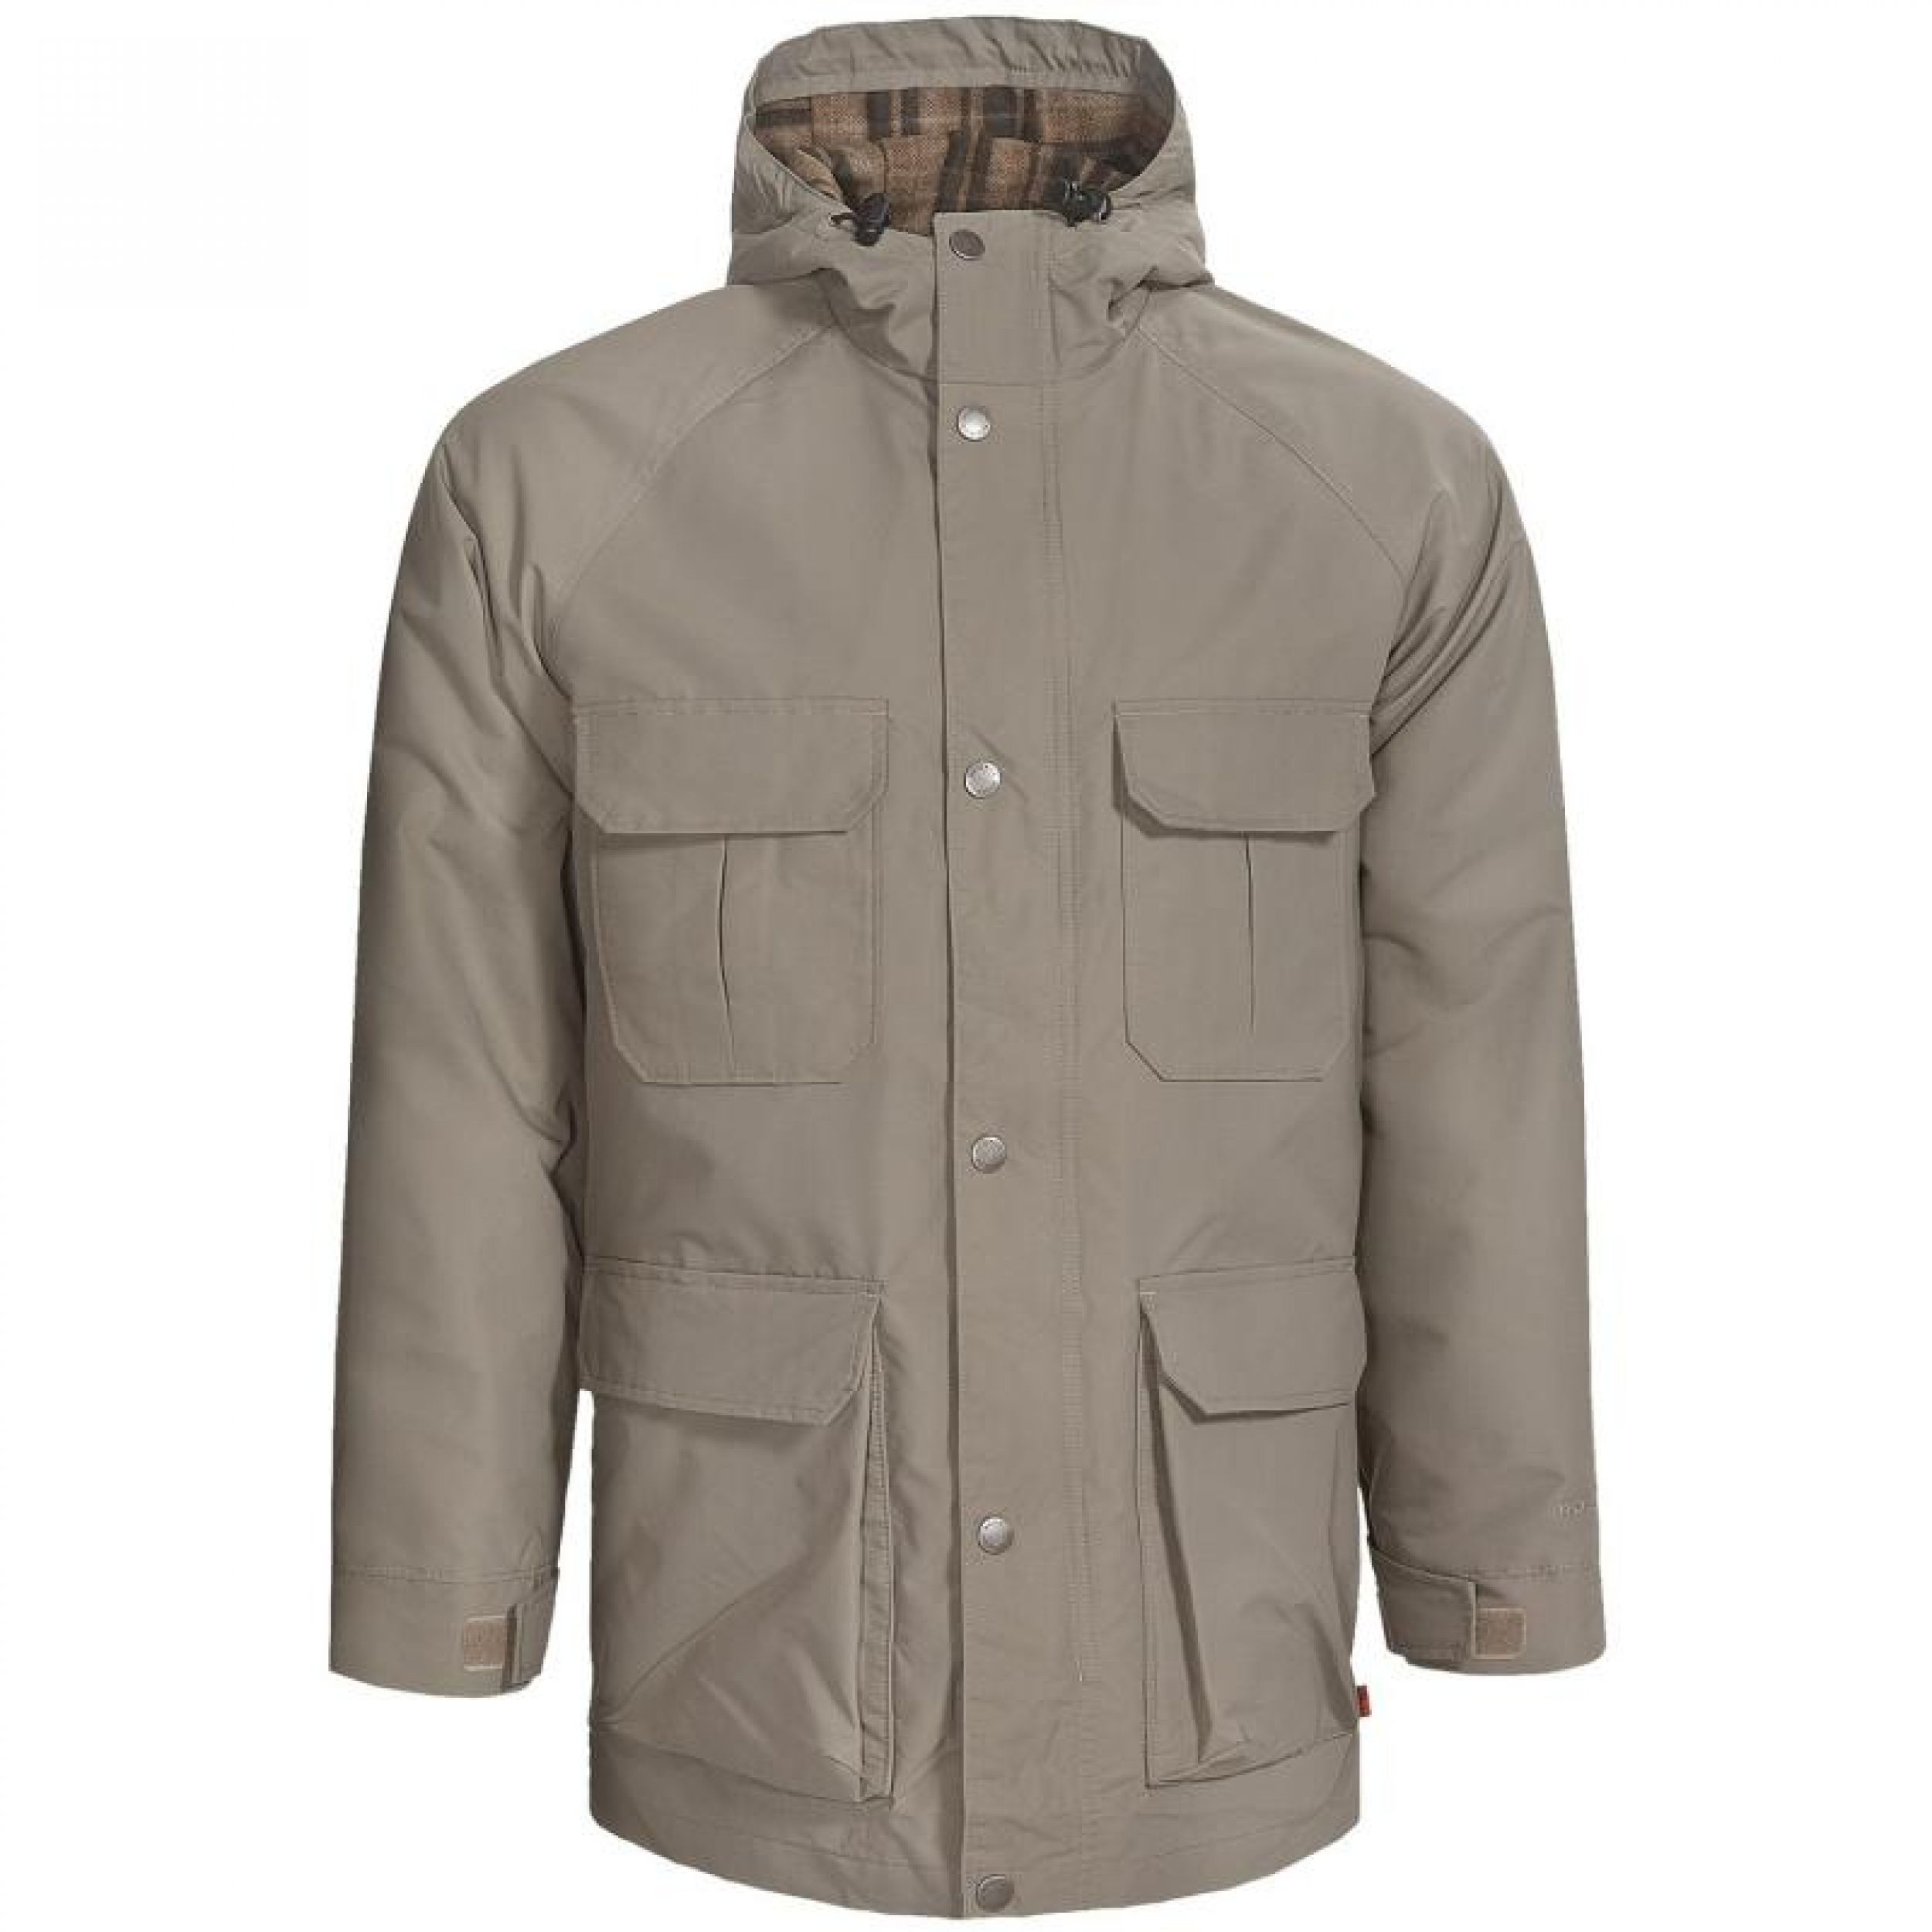 woolrich-mountain-parka-for-men-in-shalep5177a_021500.jpg